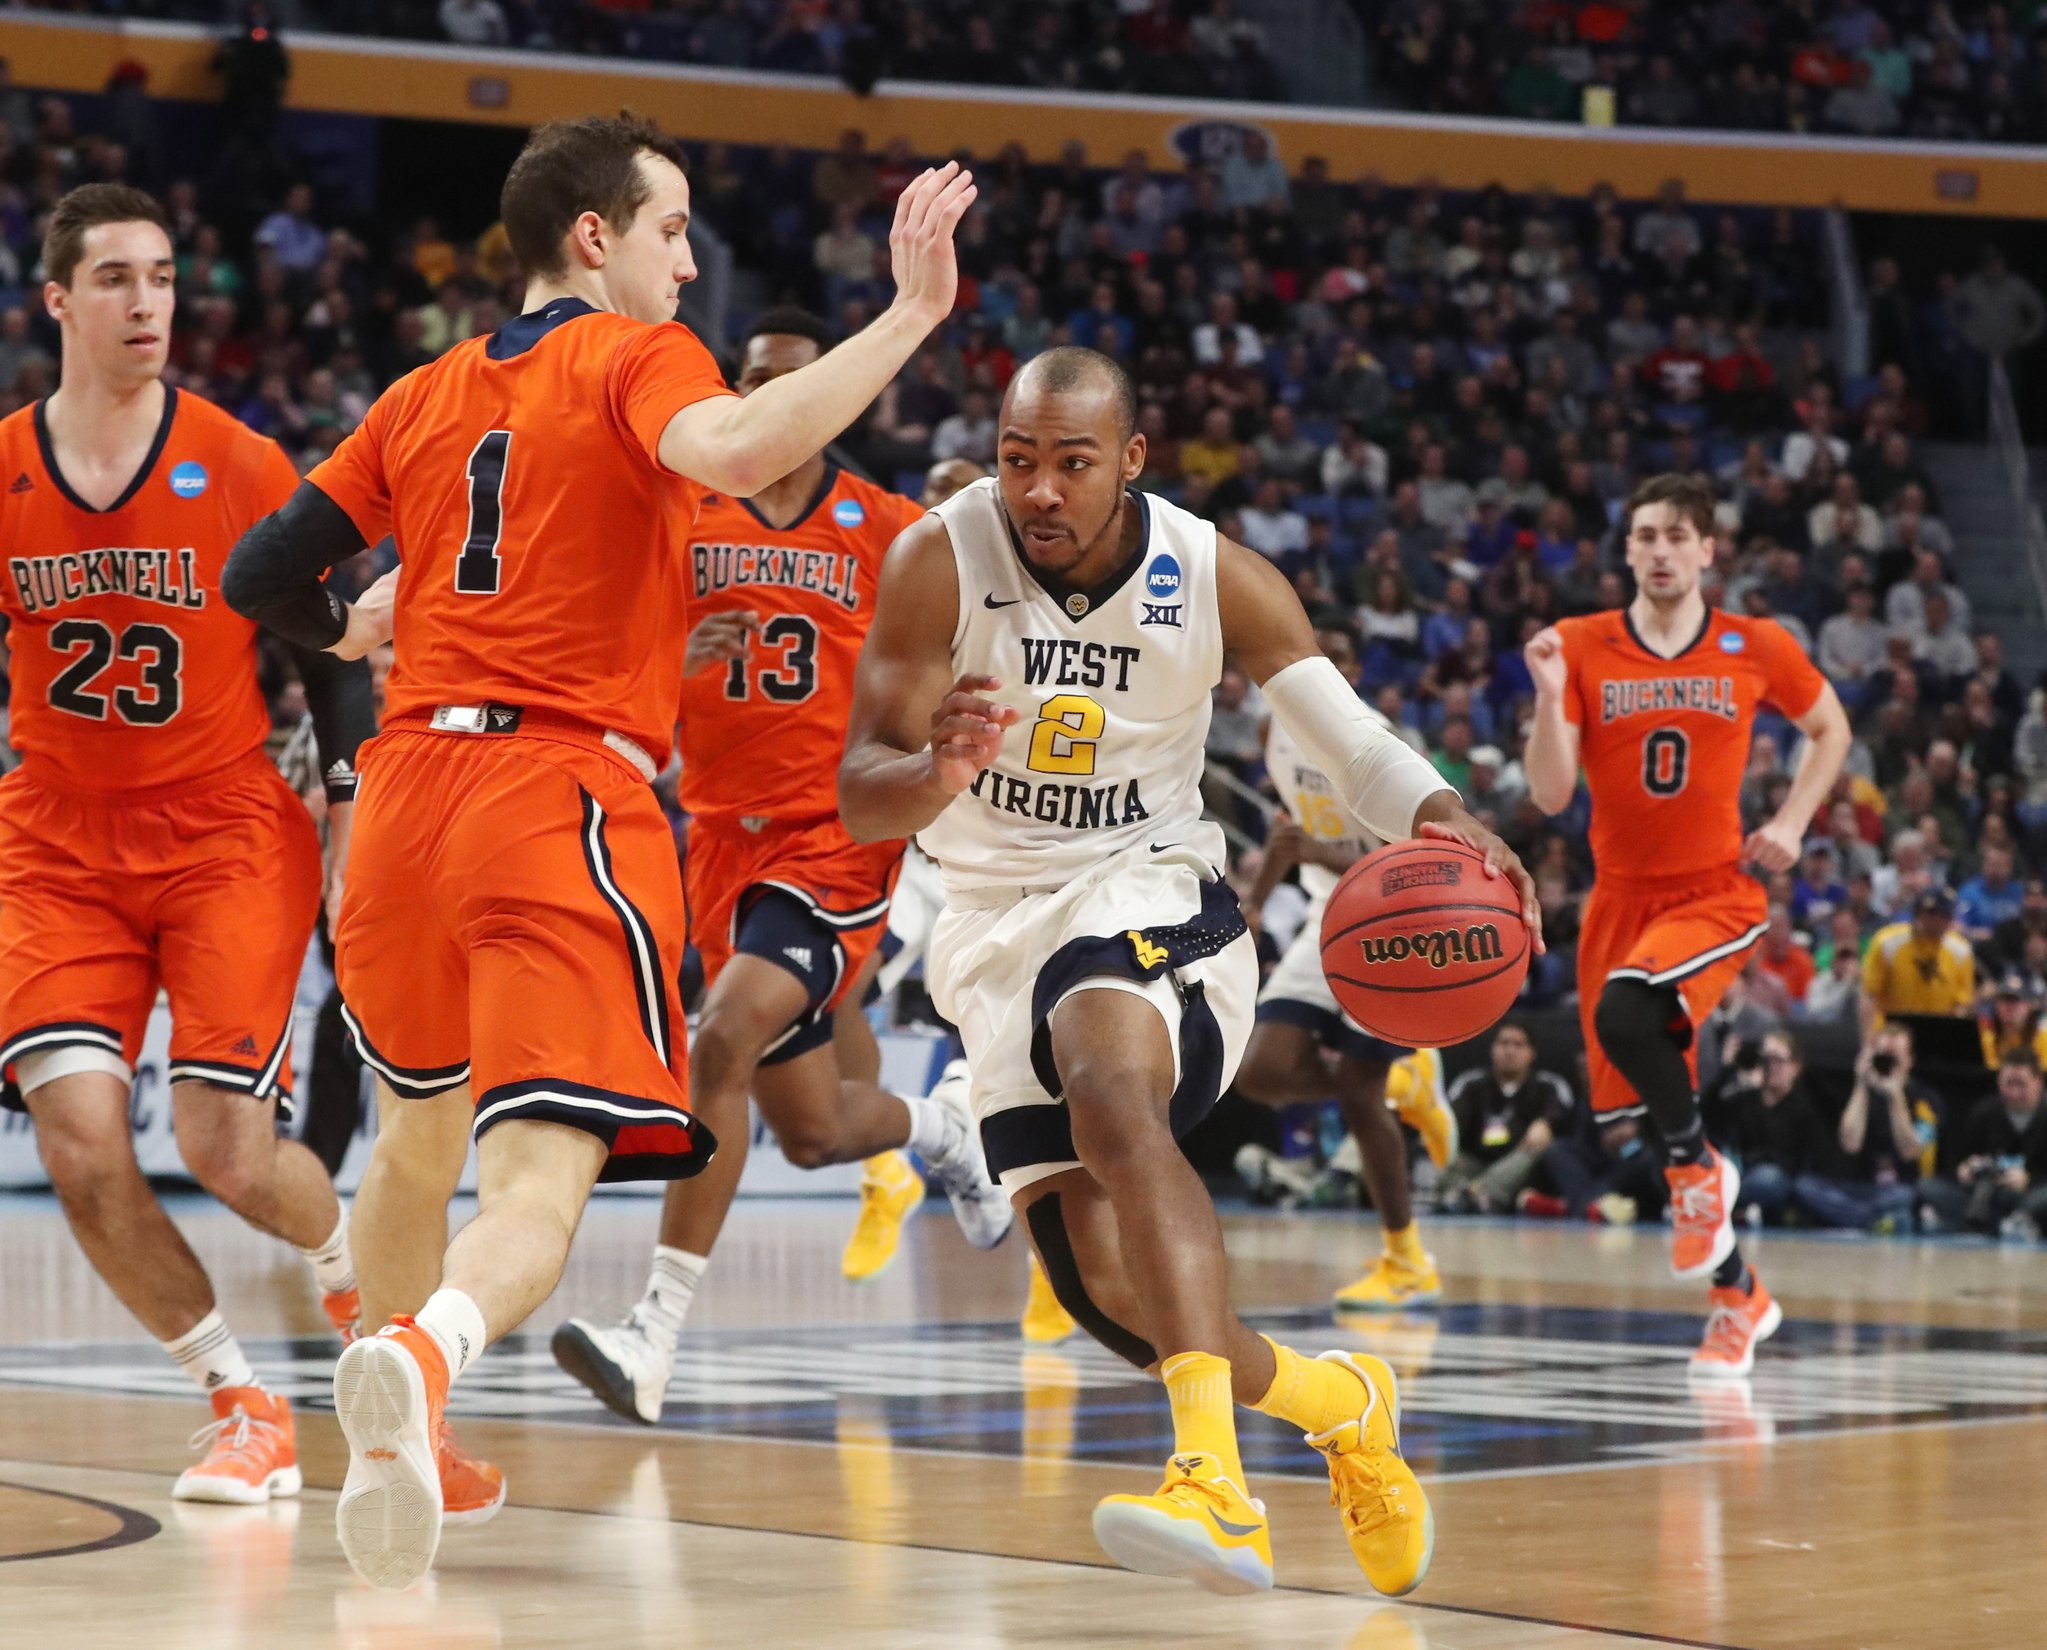 Jevon Carter brings the ball up the floor for West Virginia against Bucknell. (James P. McCoy/Buffalo News)